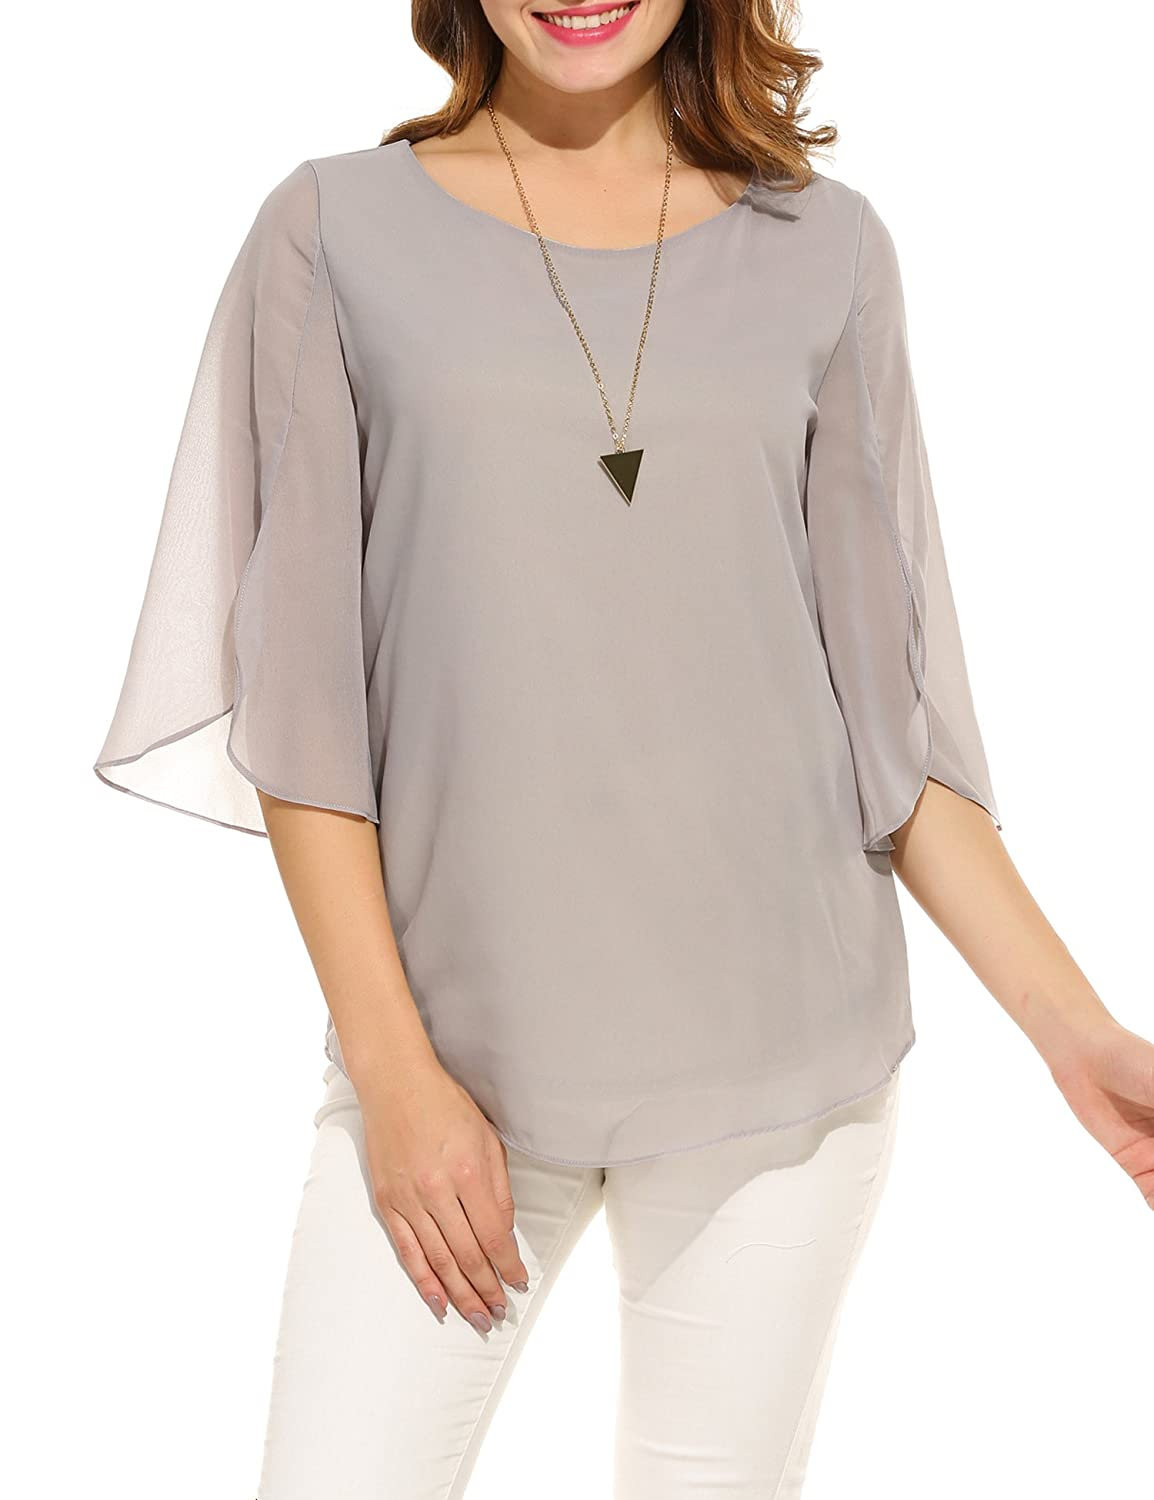 4d6b0546 Features: Casual, Scoop Neck, Elegant, 3/4 Sleeve tops, Plus size blouses  and tops, Chiffon shirts loose fit. Great for Spring, Summer and Fall.